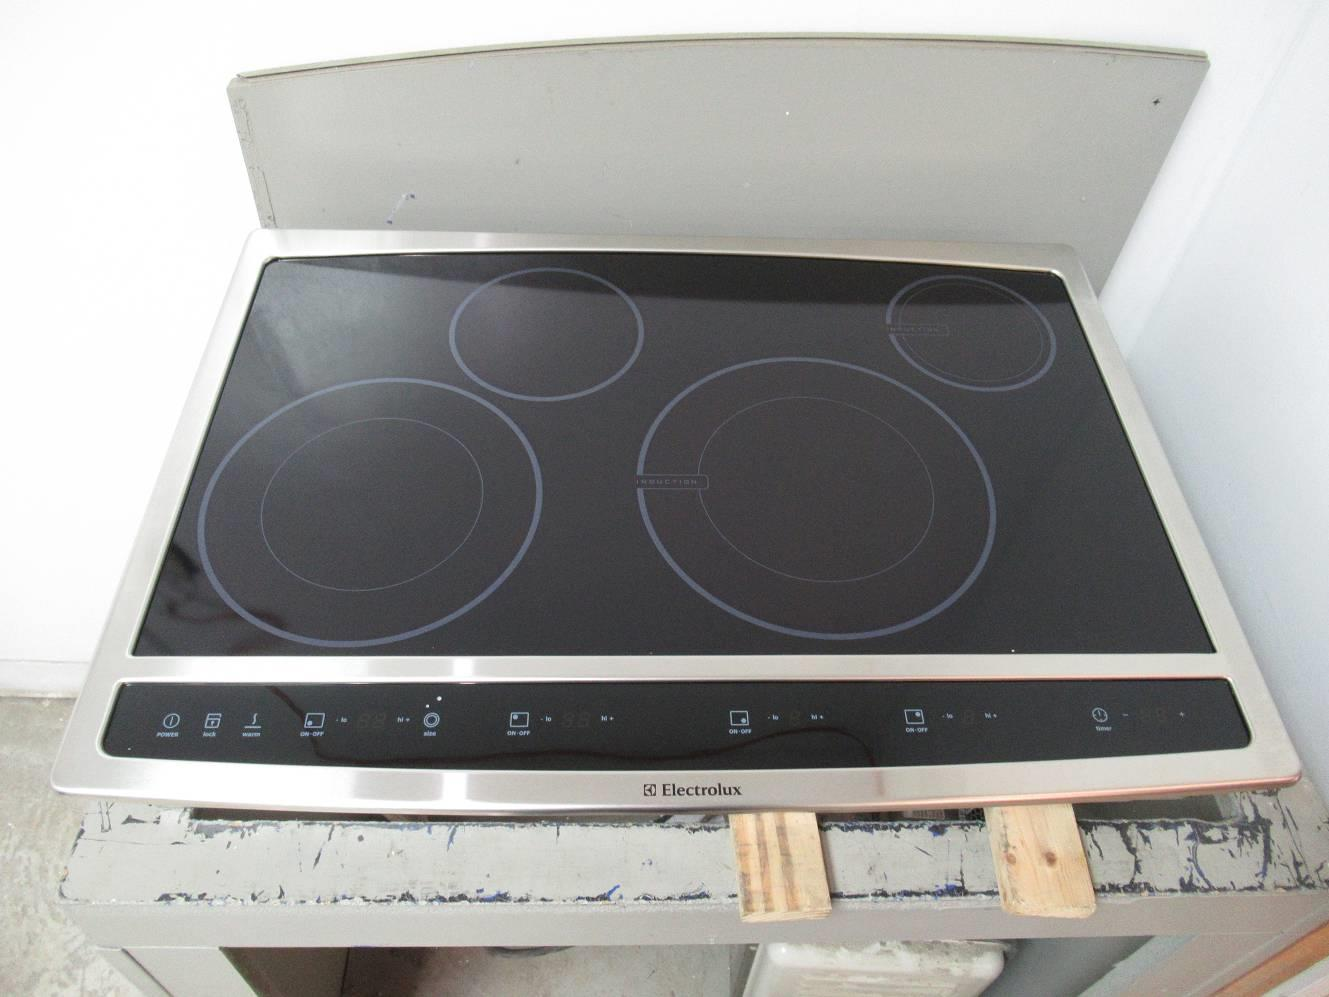 Electrolux 30 Led Display Wave Touch Series Hybrid Blk Induction Ew30cc55gs